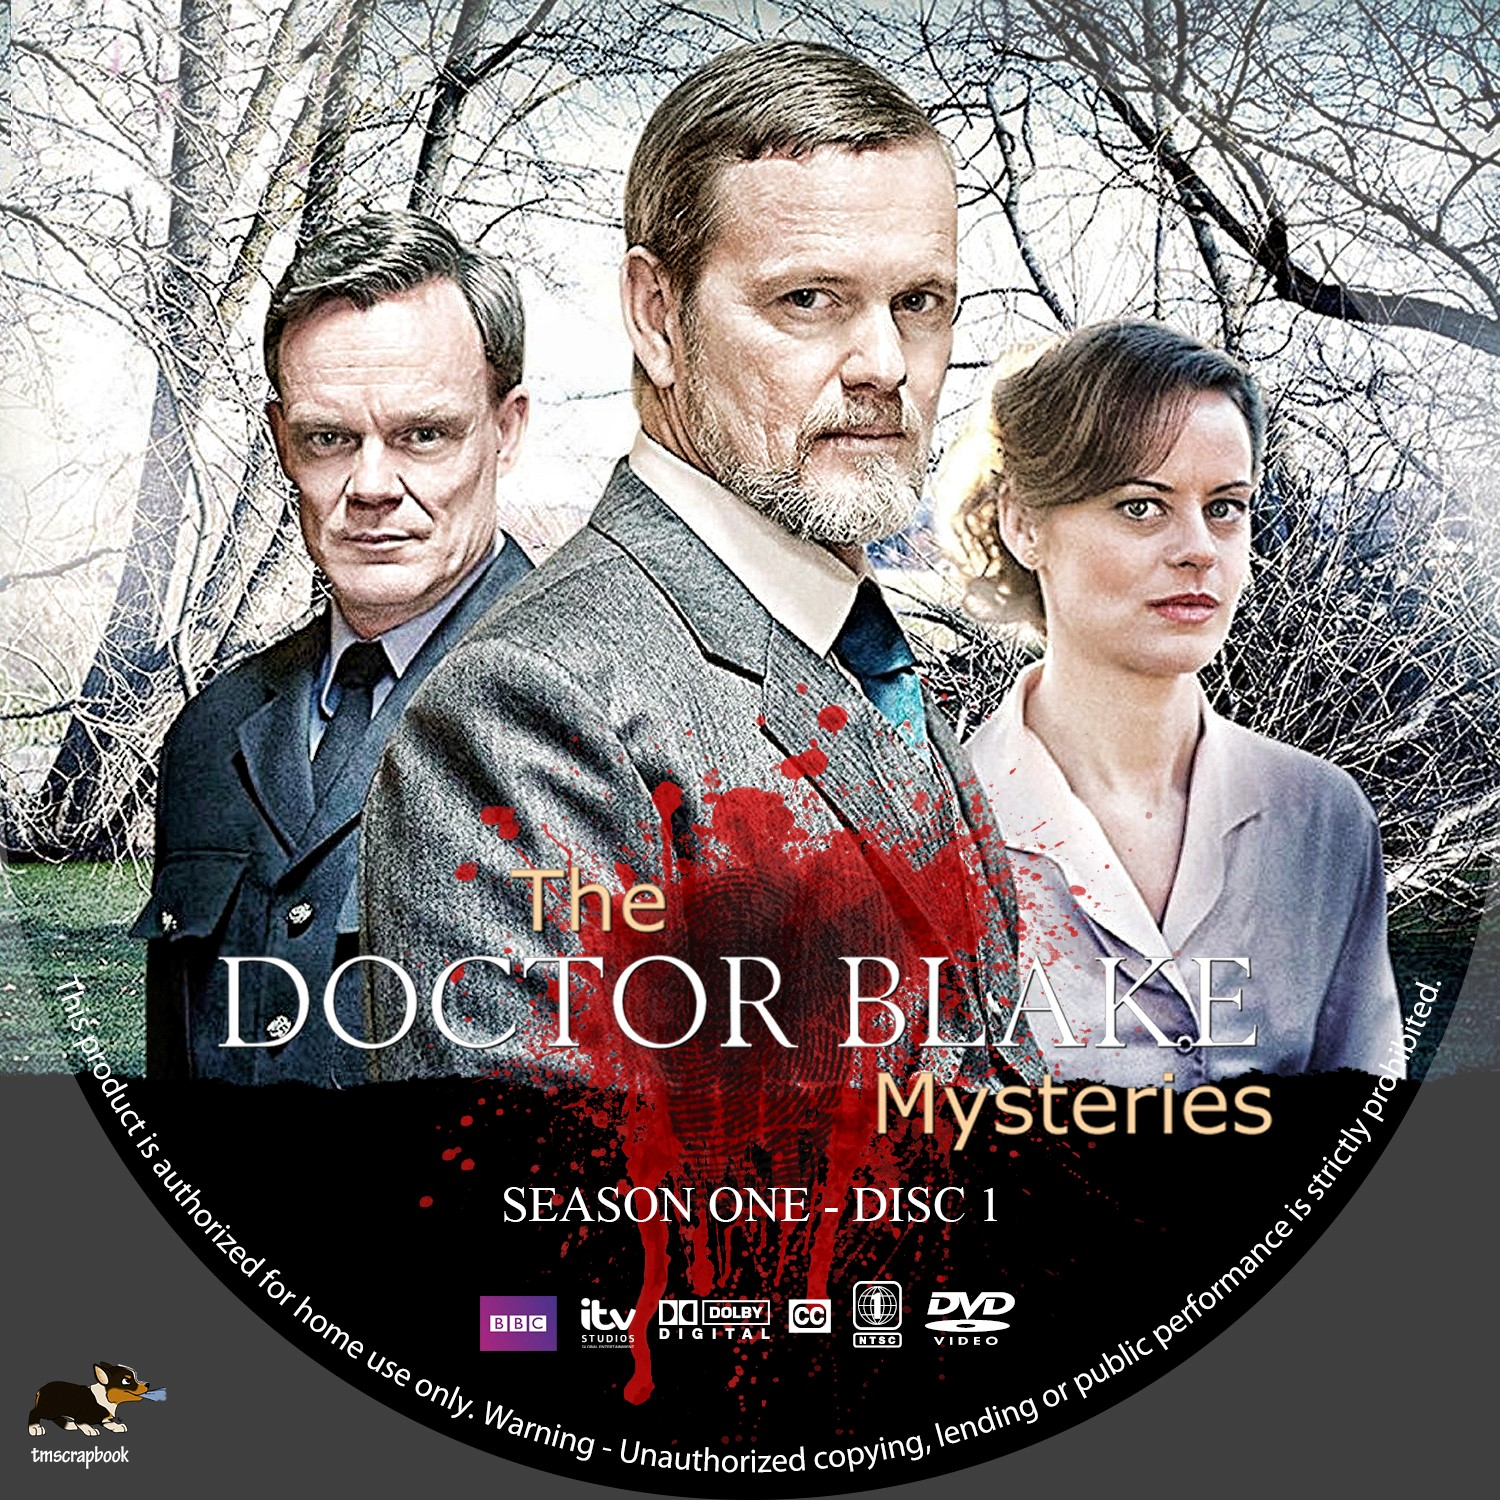 The Doctor Blake Mysteries Season 1 Disc 1-3 DVD Label